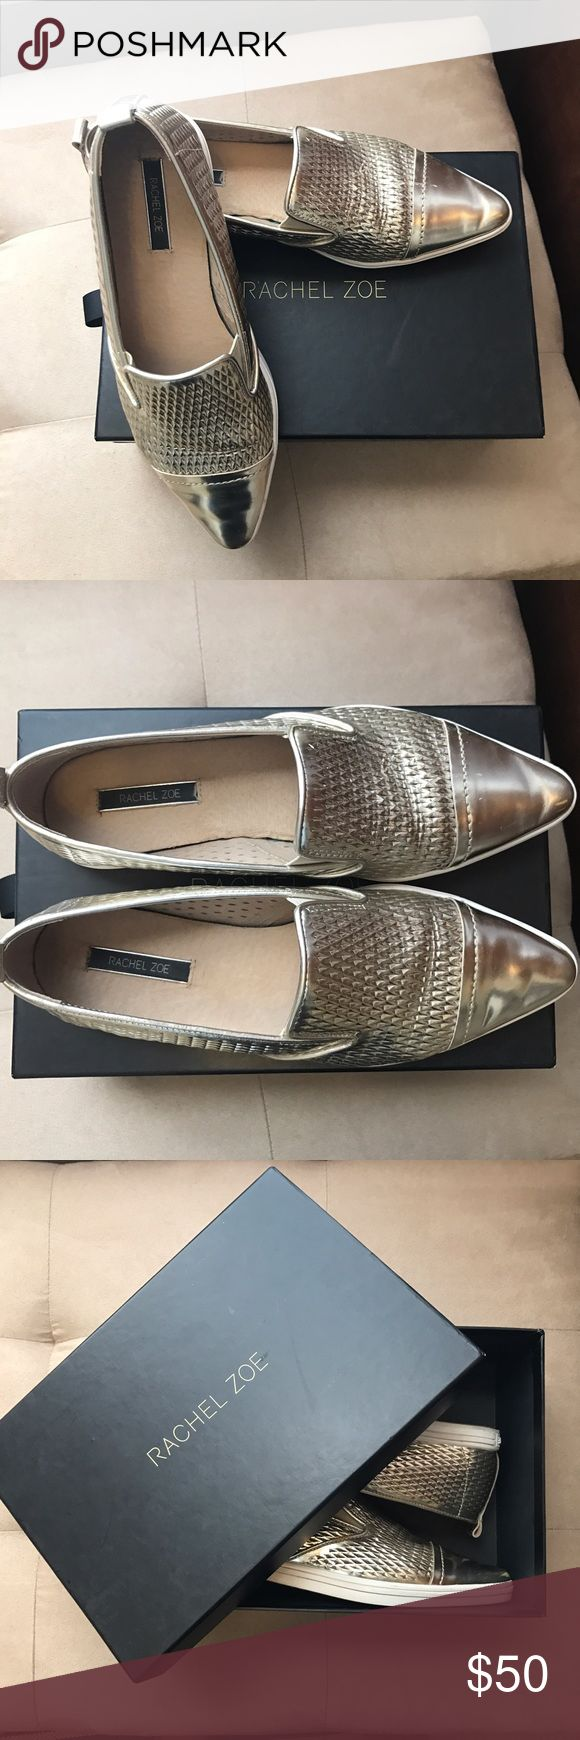 Rachel Zoe Camden flats Rachel Zoe Camden flats in gold. True size 8. Clean and well maintained. Comes in box. Rachel Zoe Shoes Flats & Loafers